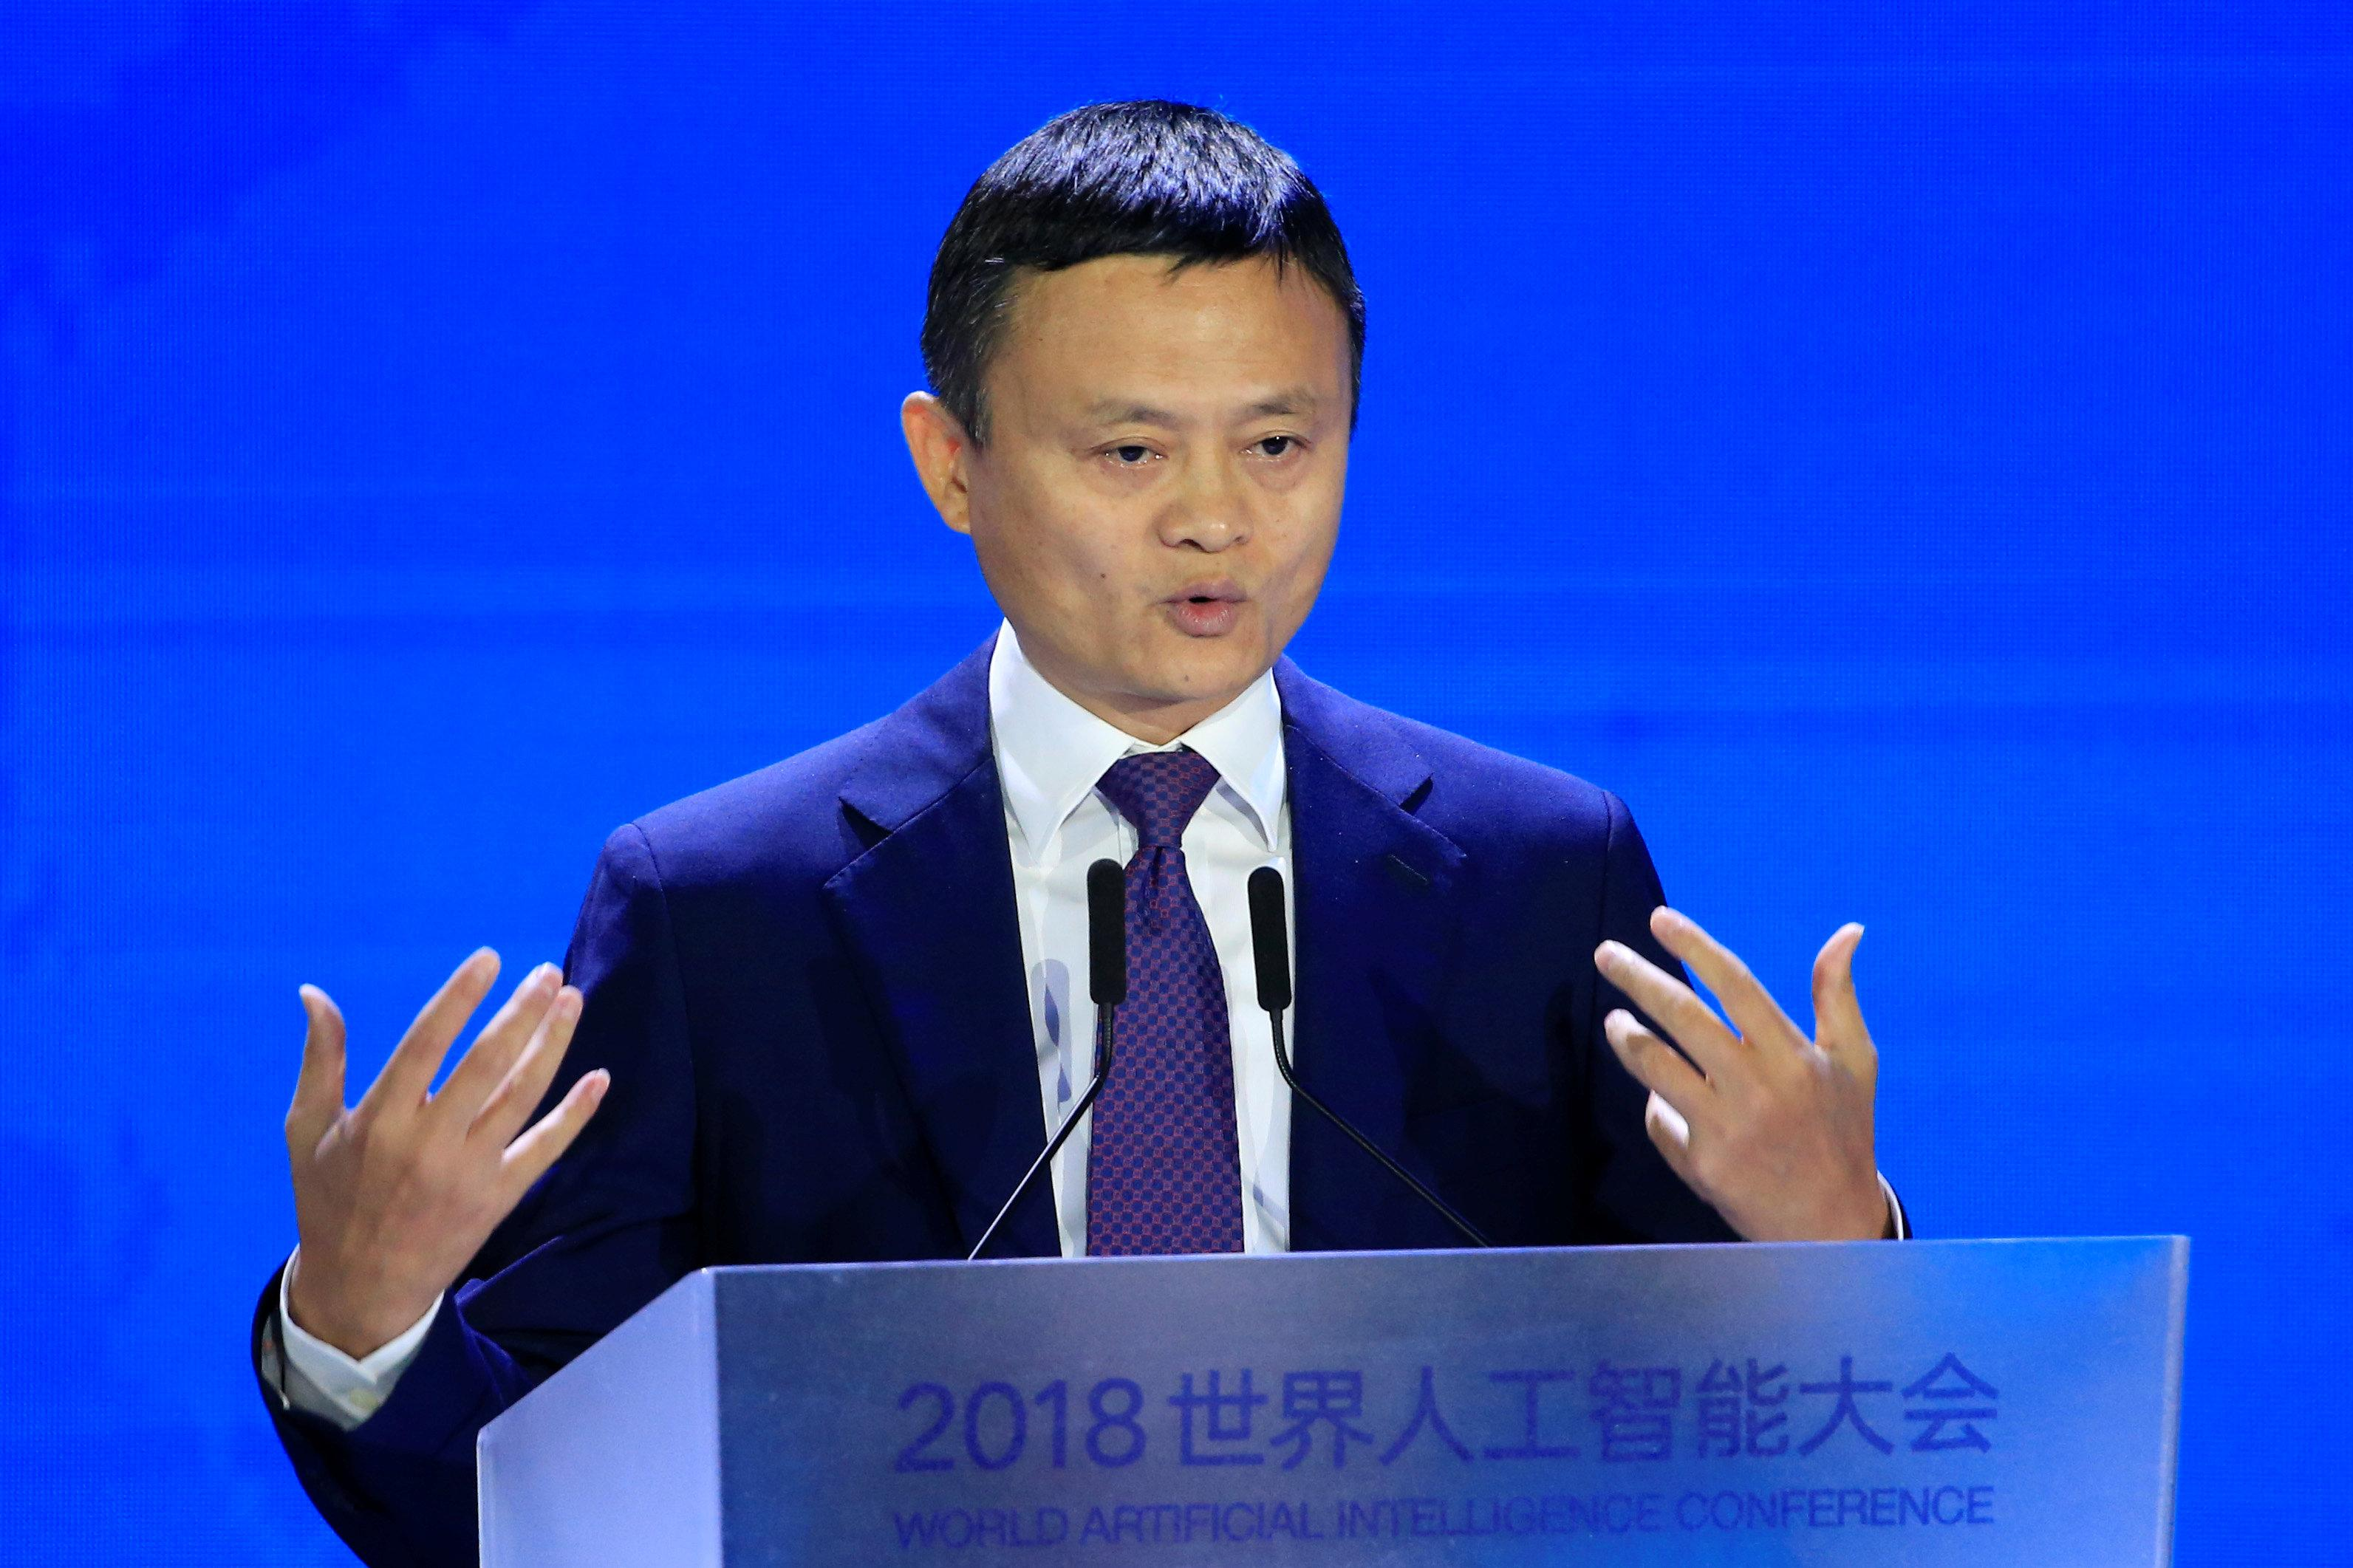 Alibaba Group co-founder and executive chairman Jack Ma attends the WAIC (World Artificial Intelligence Conference) in Shanghai, China, September 17, 2018. Aly Song